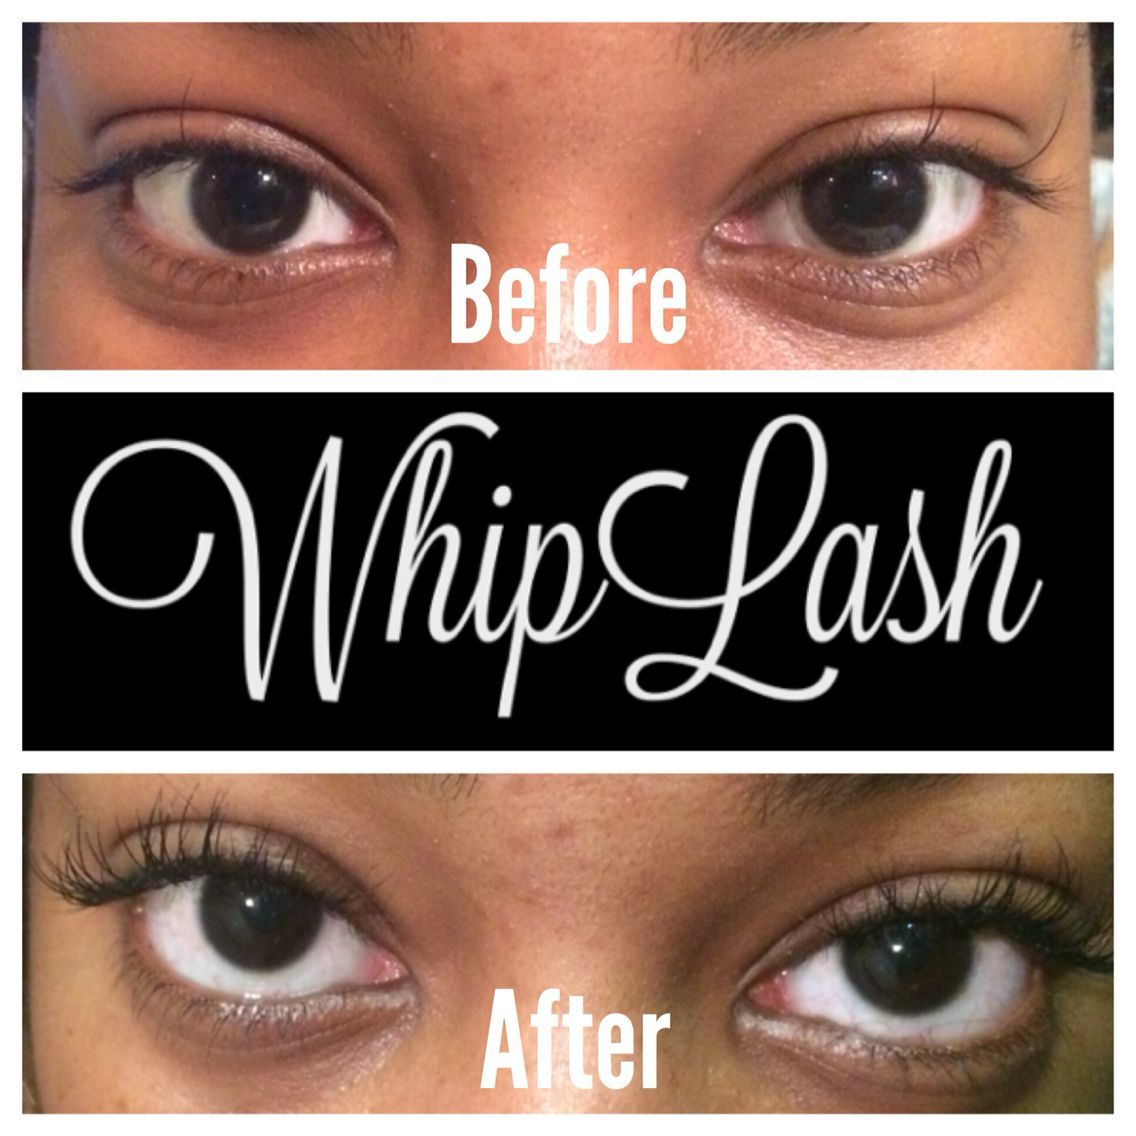 e33d6d5b9da Eyelash Extensions are the new best thing for your natural lashes! Enhance